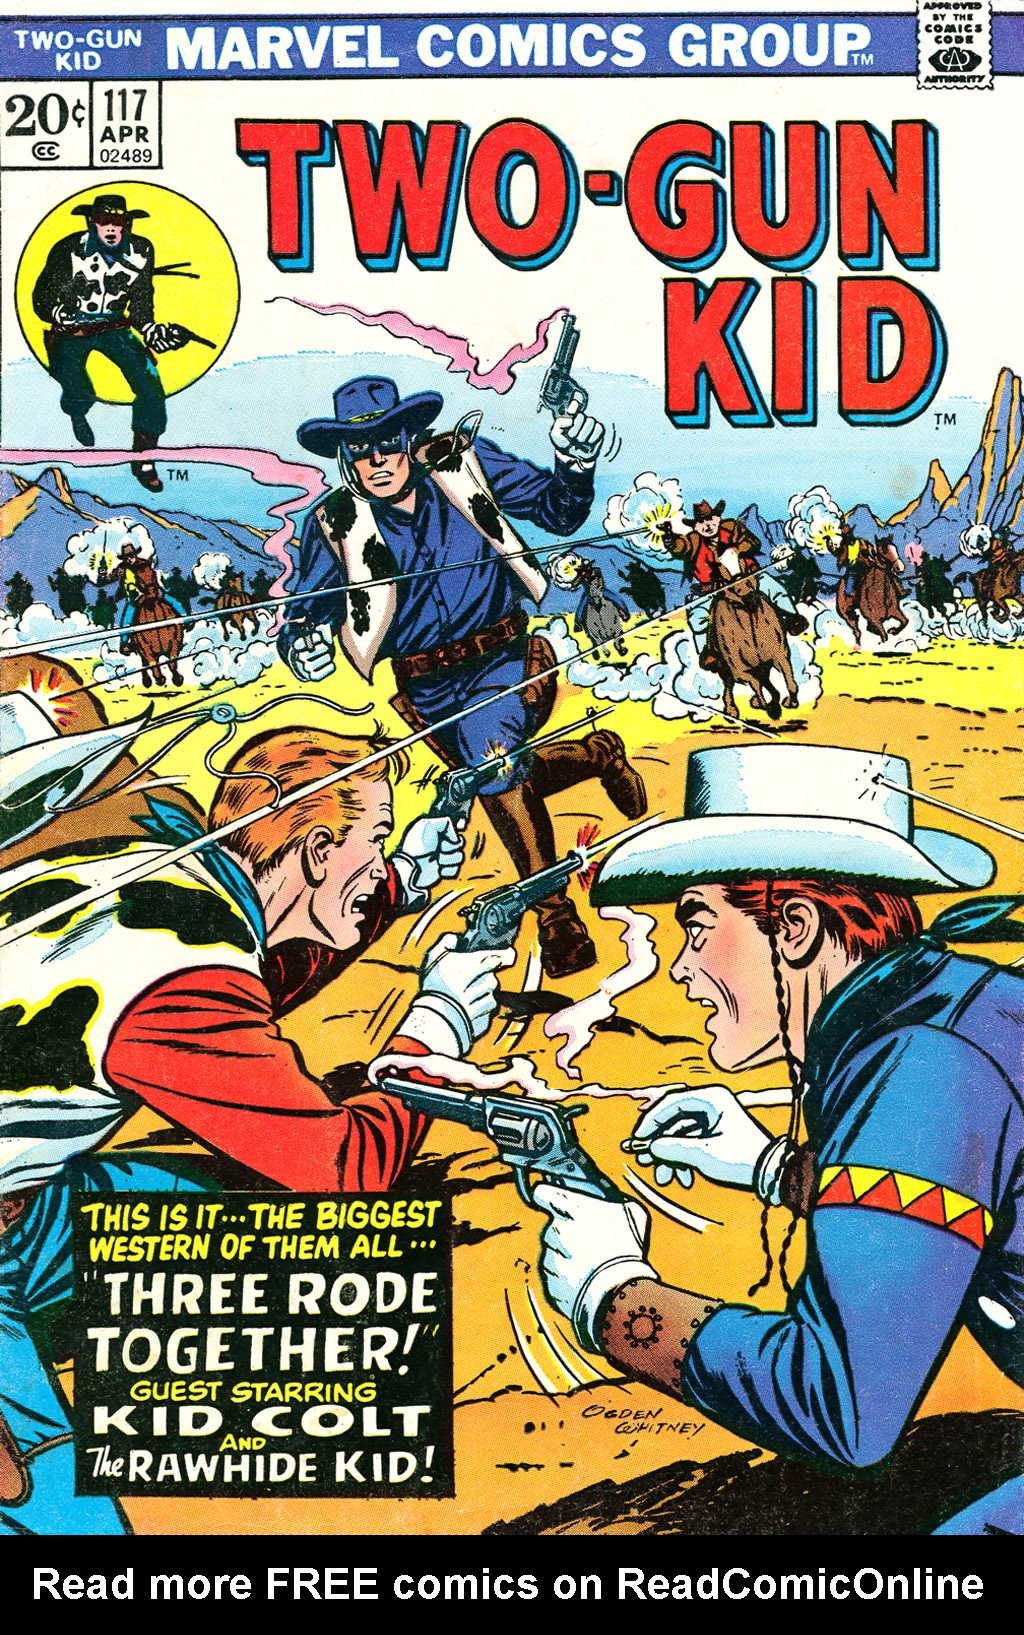 Read online Two-Gun Kid comic -  Issue #117 - 1